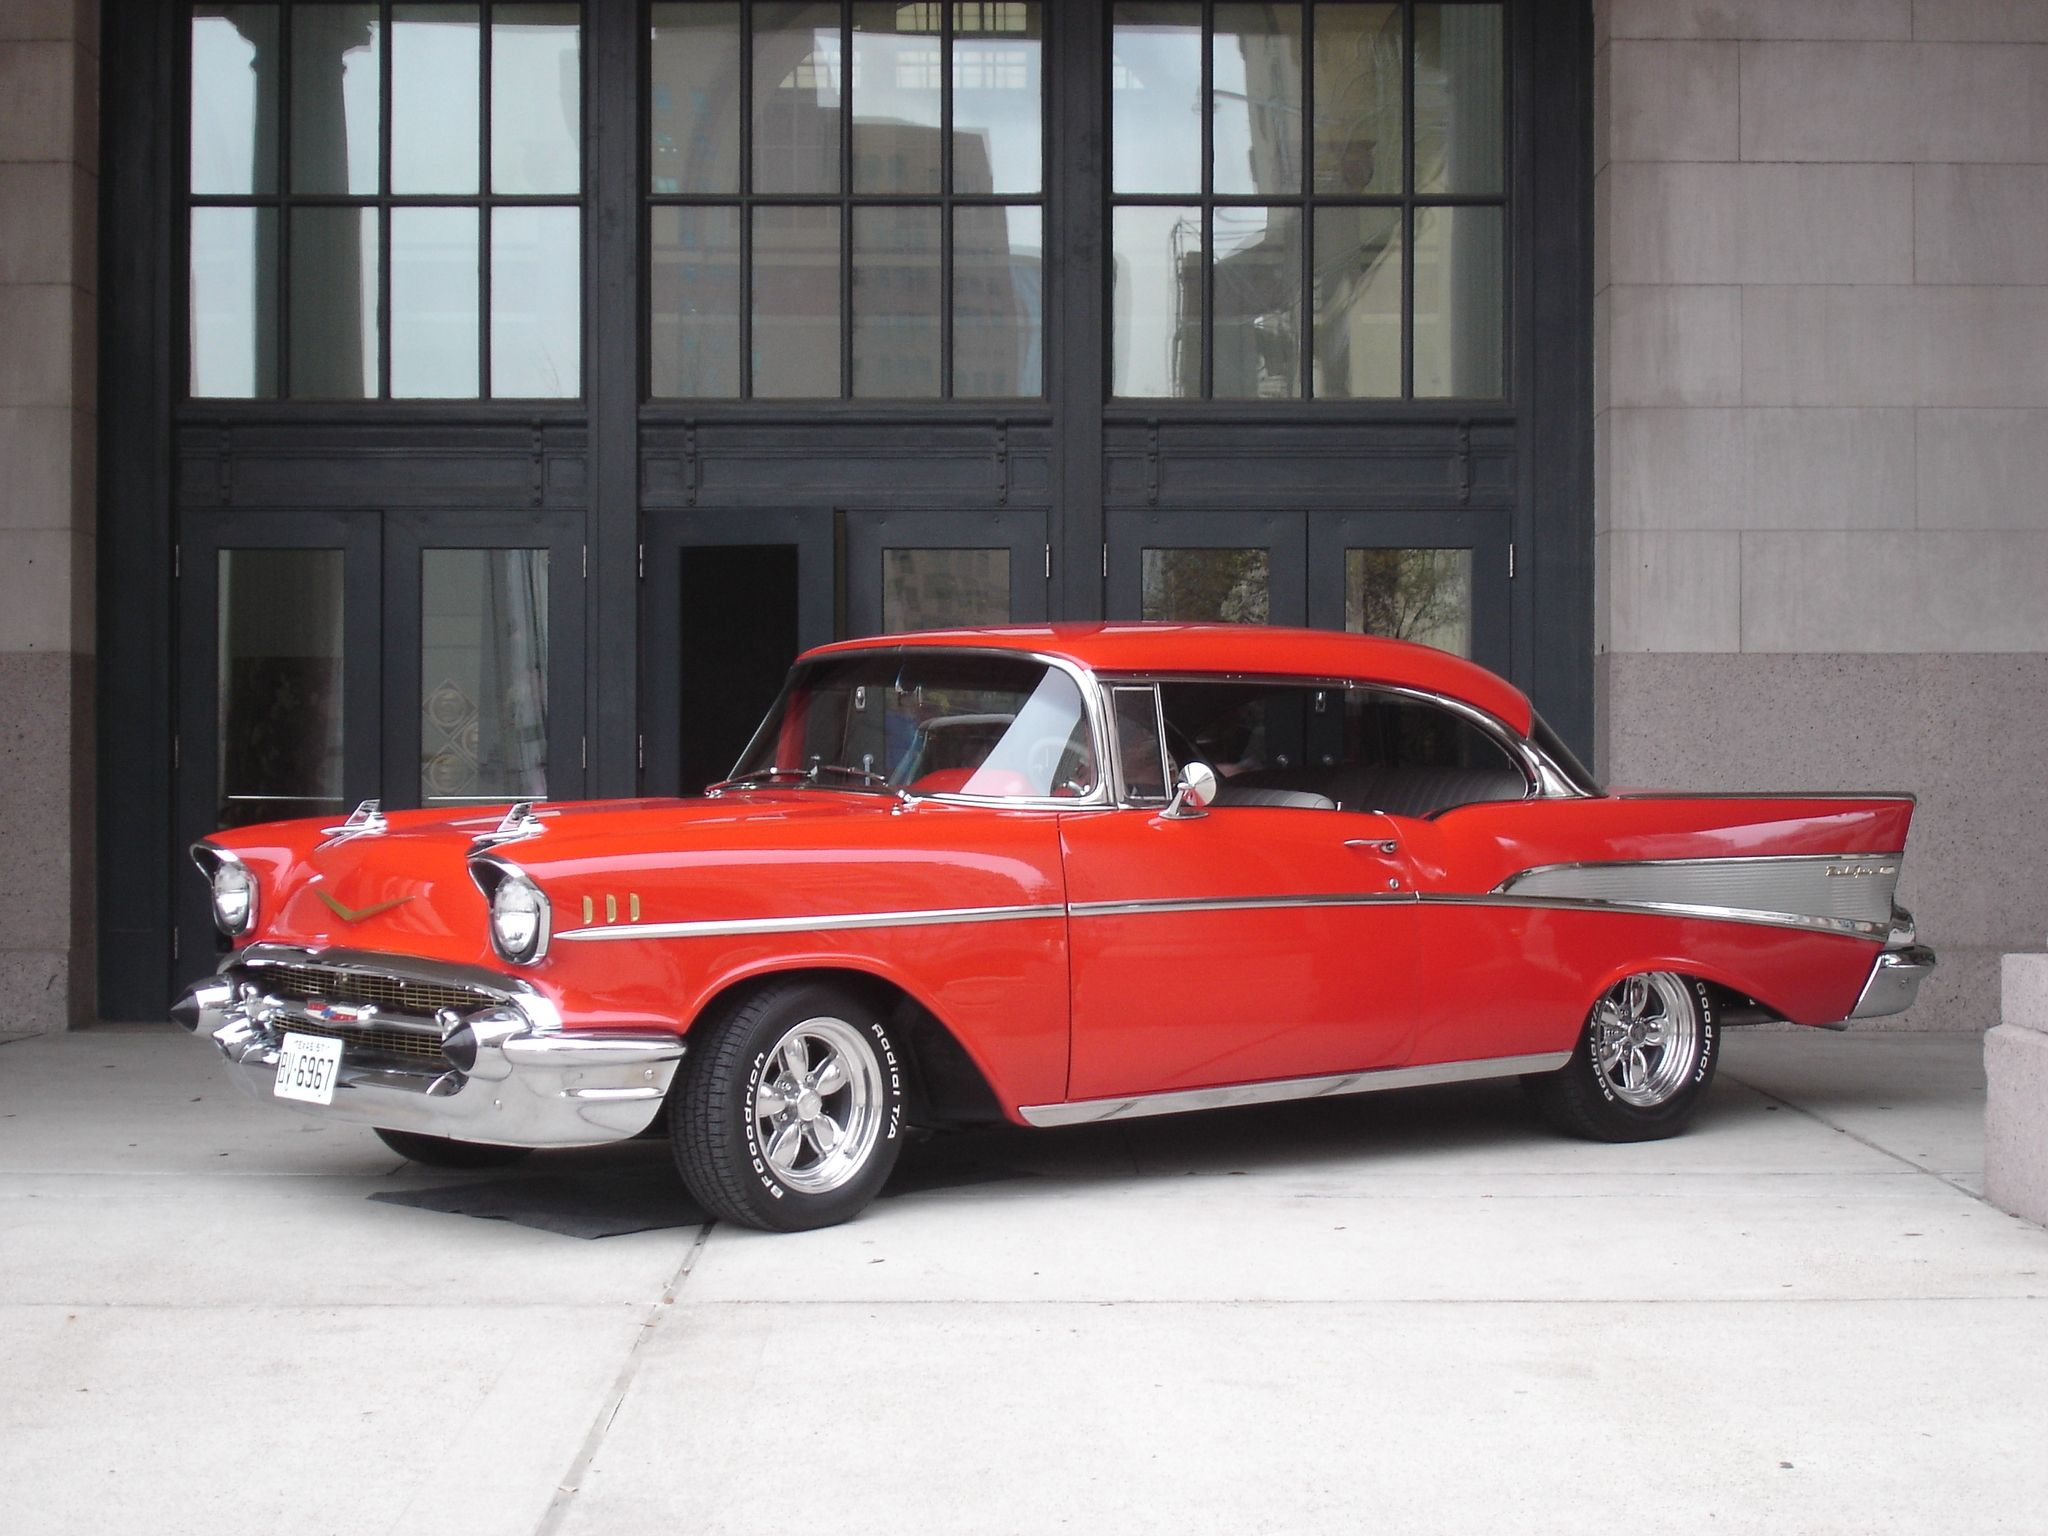 You just can't beat the classics 57 Chevy Classy cars